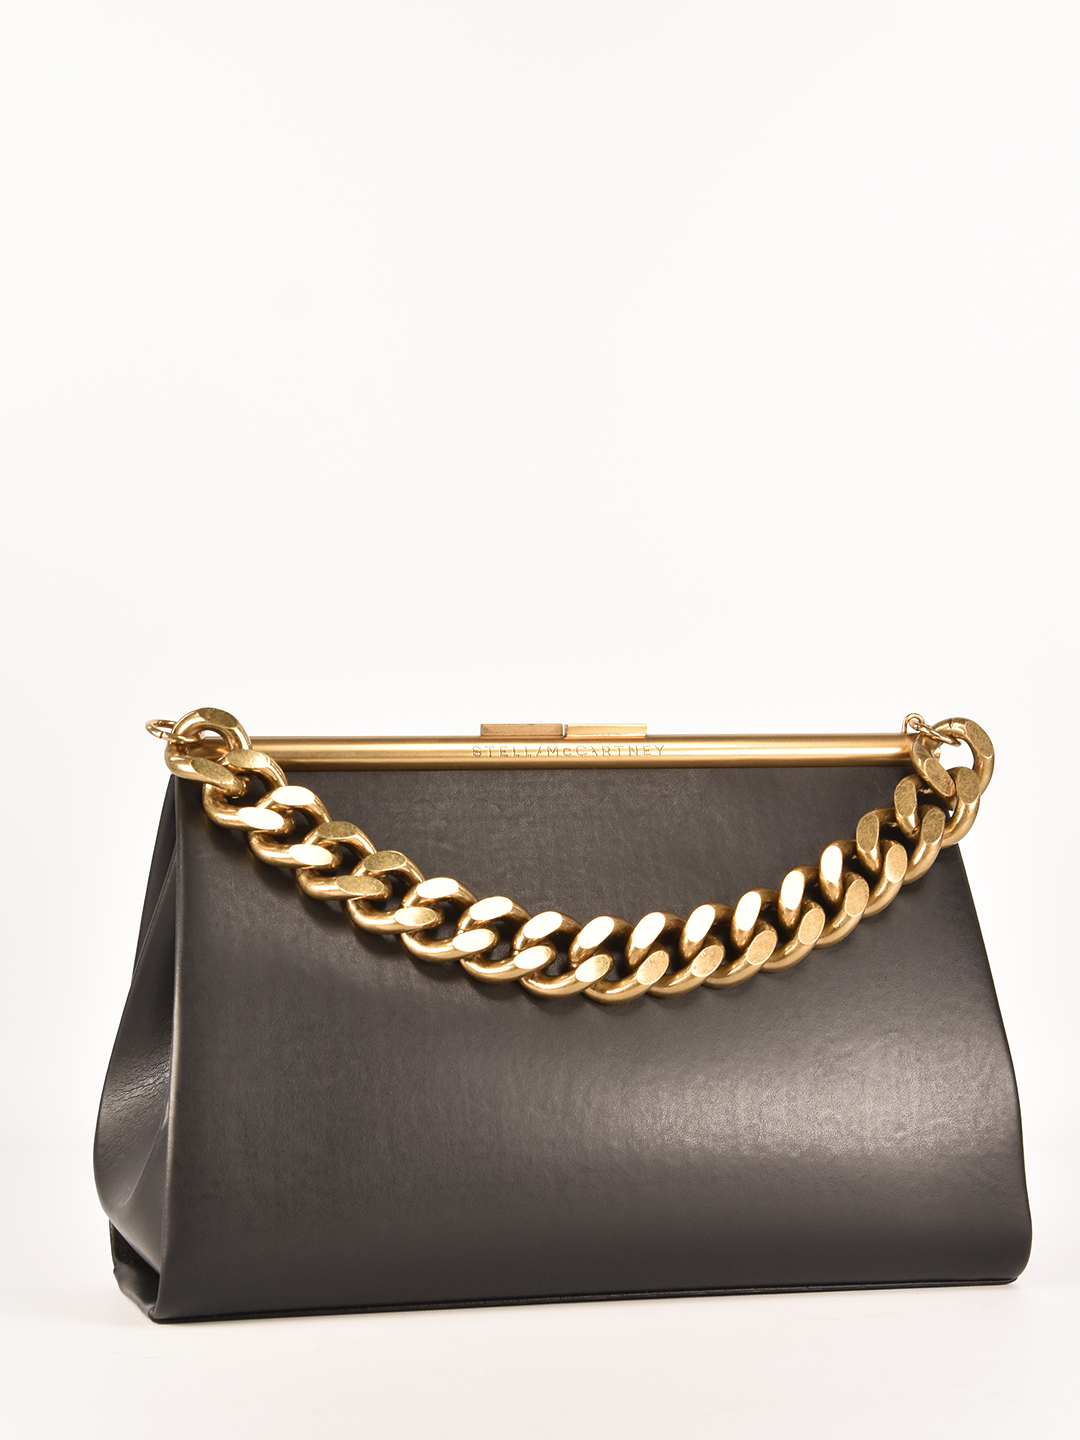 Stella Mccartney CHAIN MEDIUM BAG